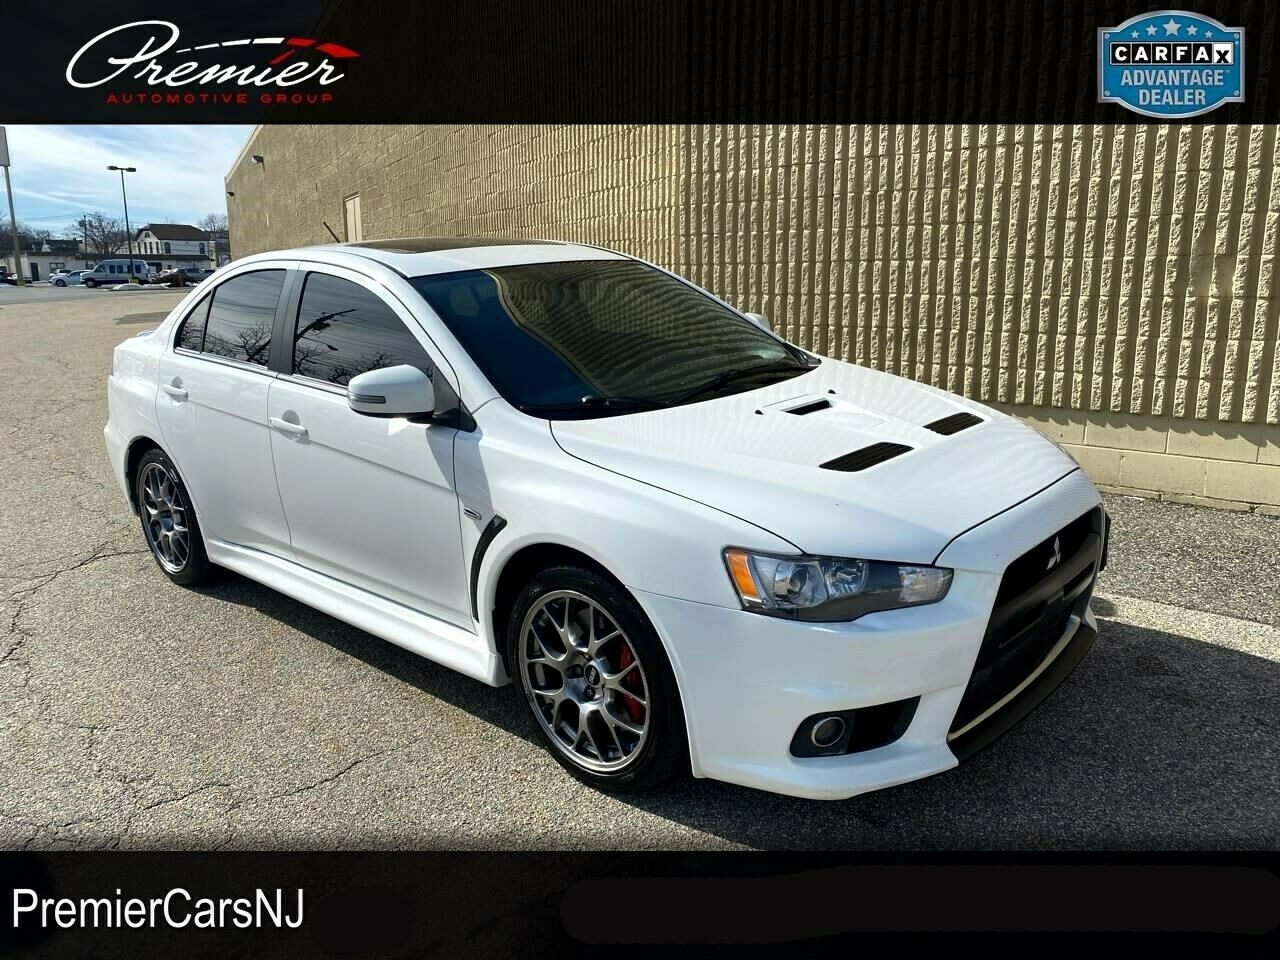 2015 Mitsubishi Lancer, White with 144523 Miles available now!